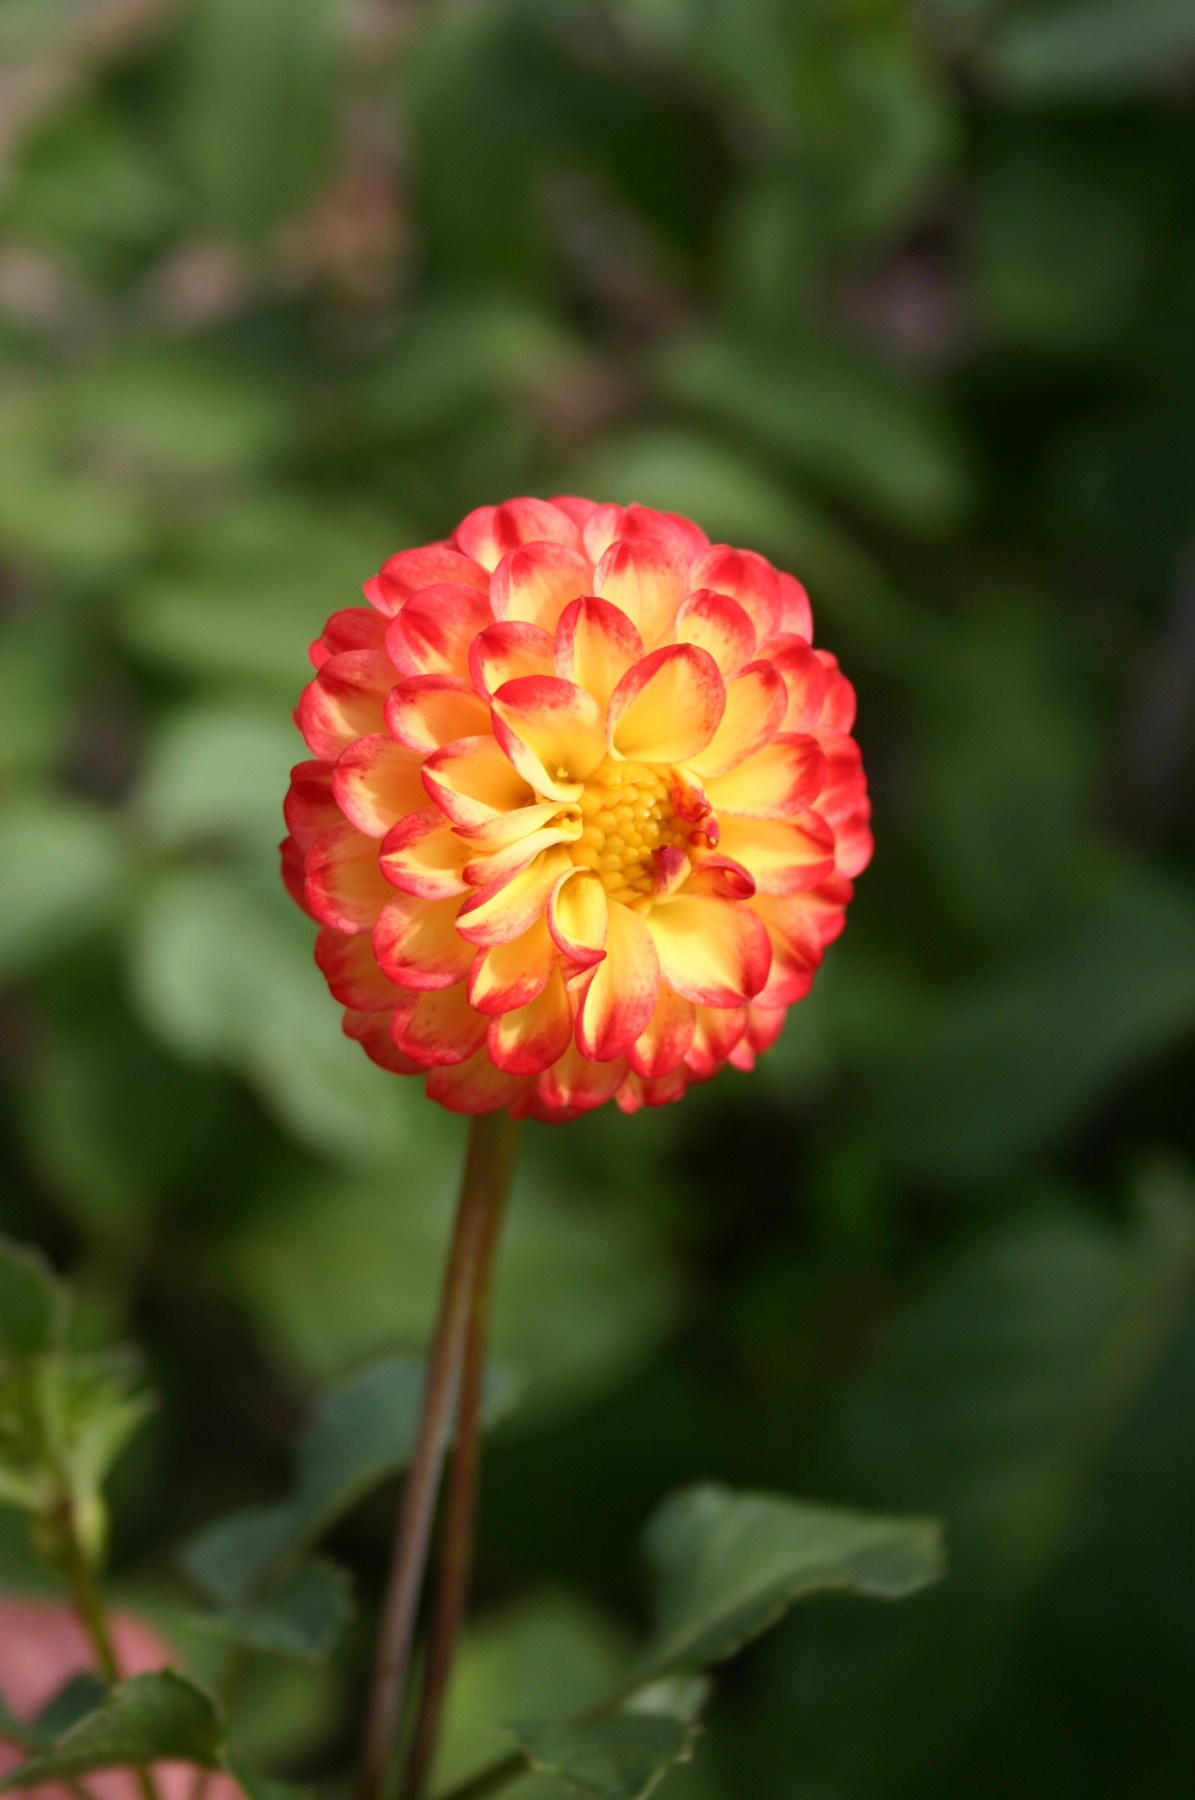 Growing Early Blooming Dahlias By Roger Marshall